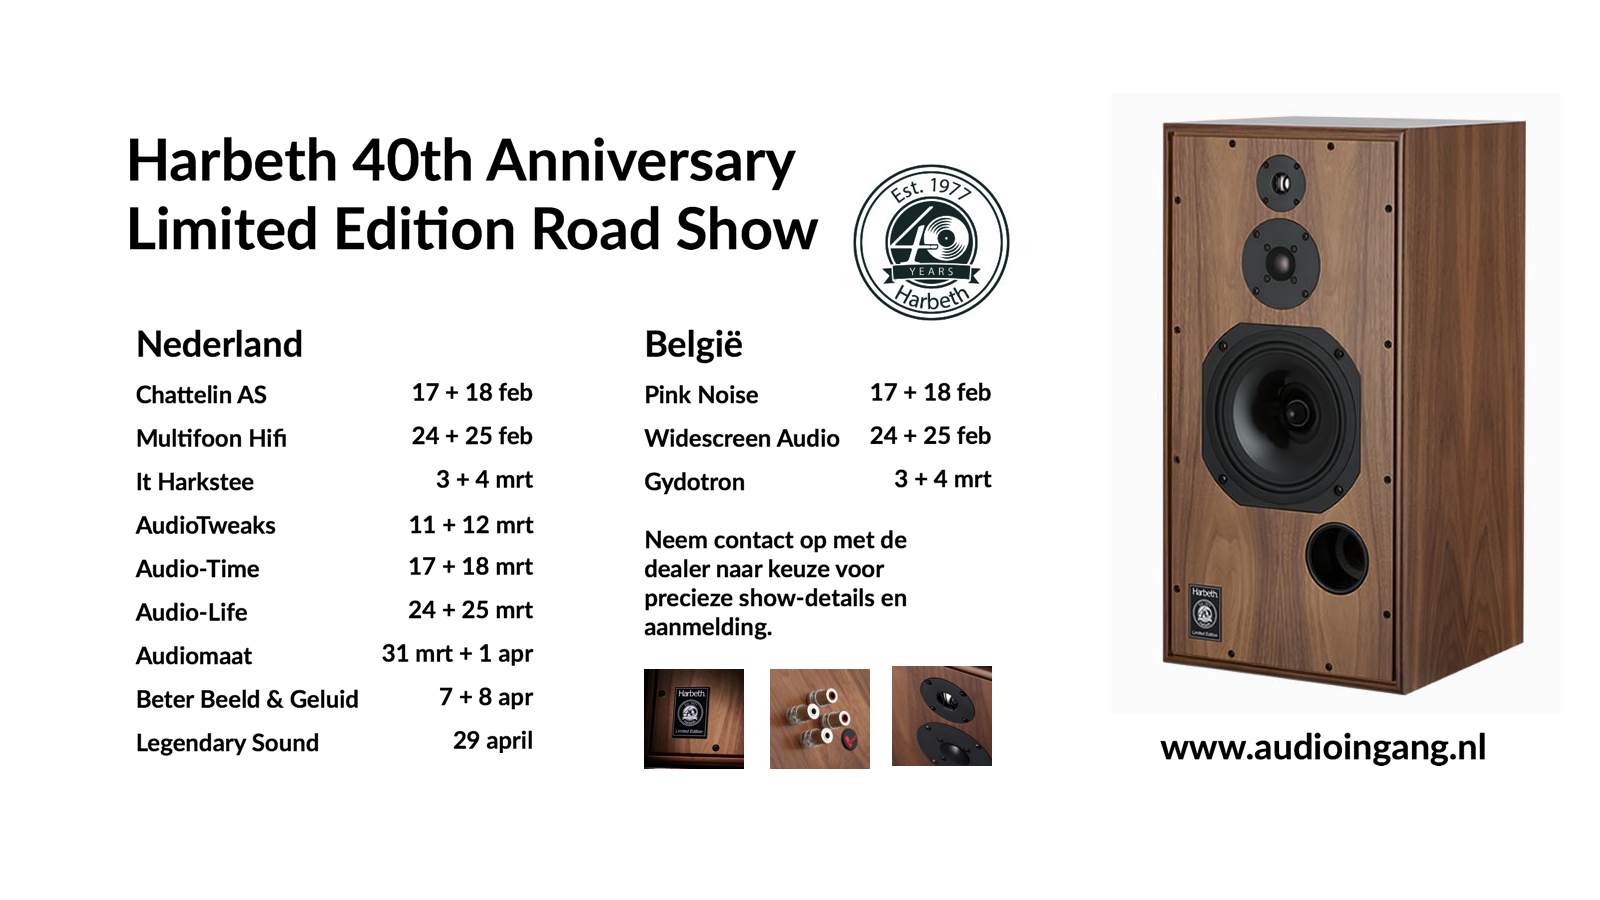 40th Anniversary Limited Edition road show